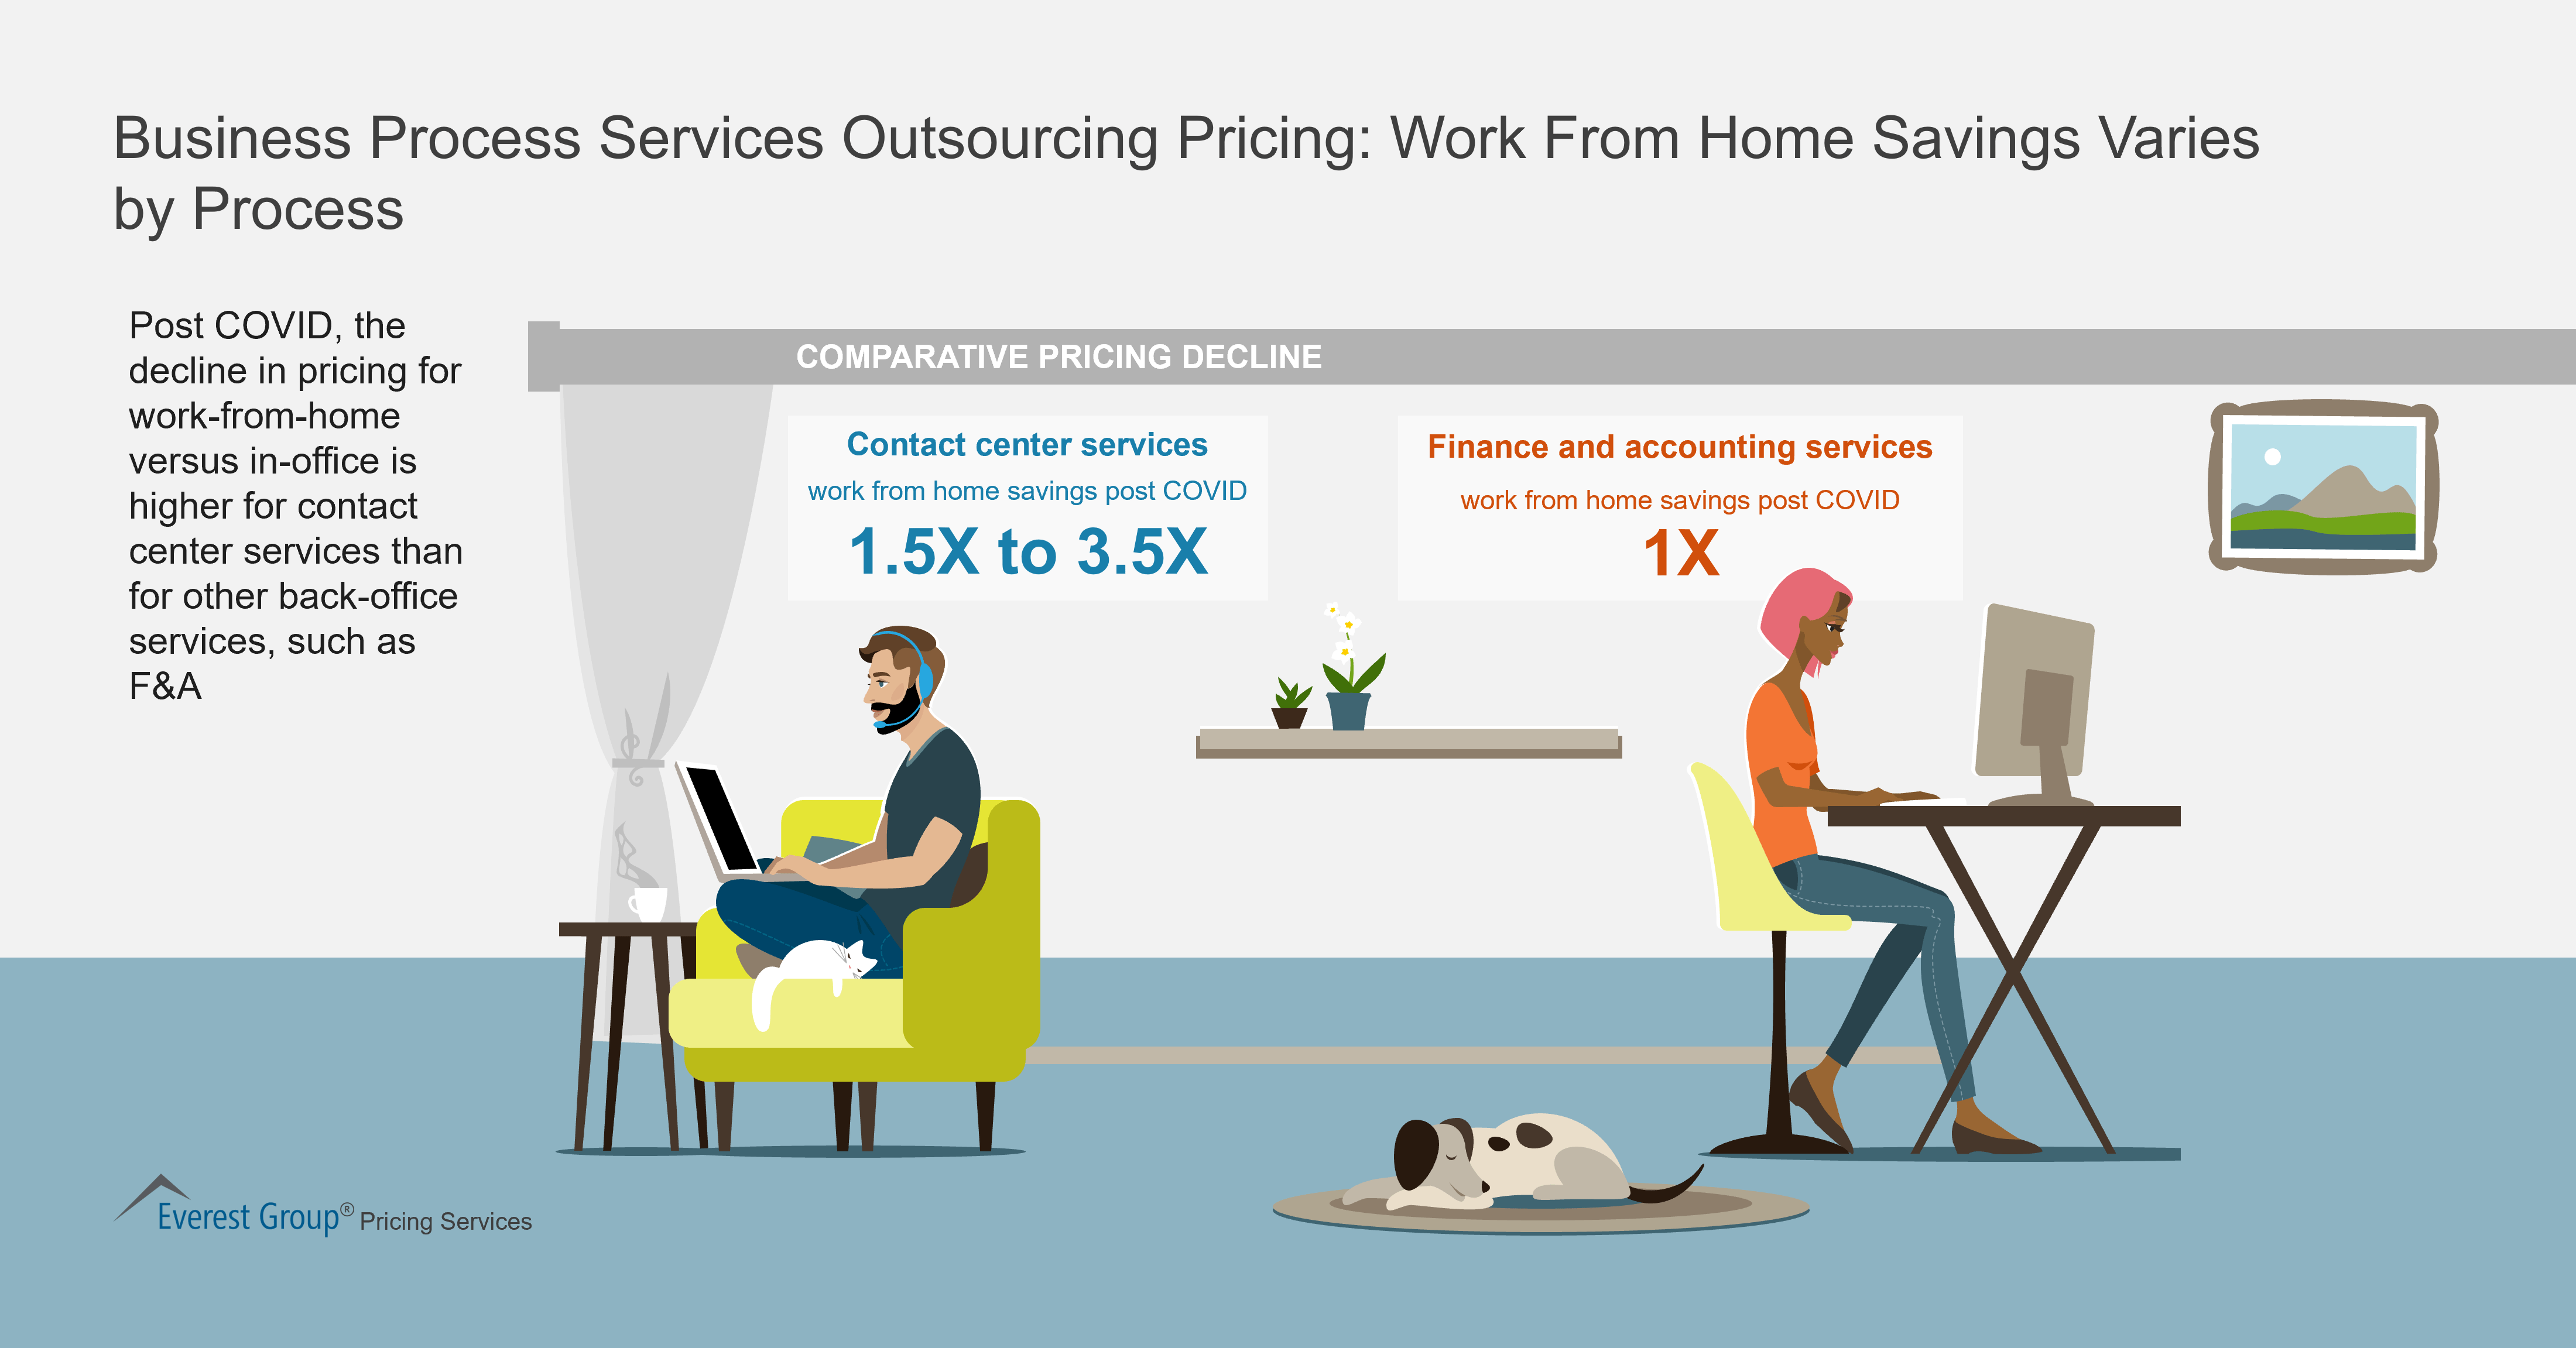 Business Process Services Outsourcing Pricing: Work From Home Savings Varies